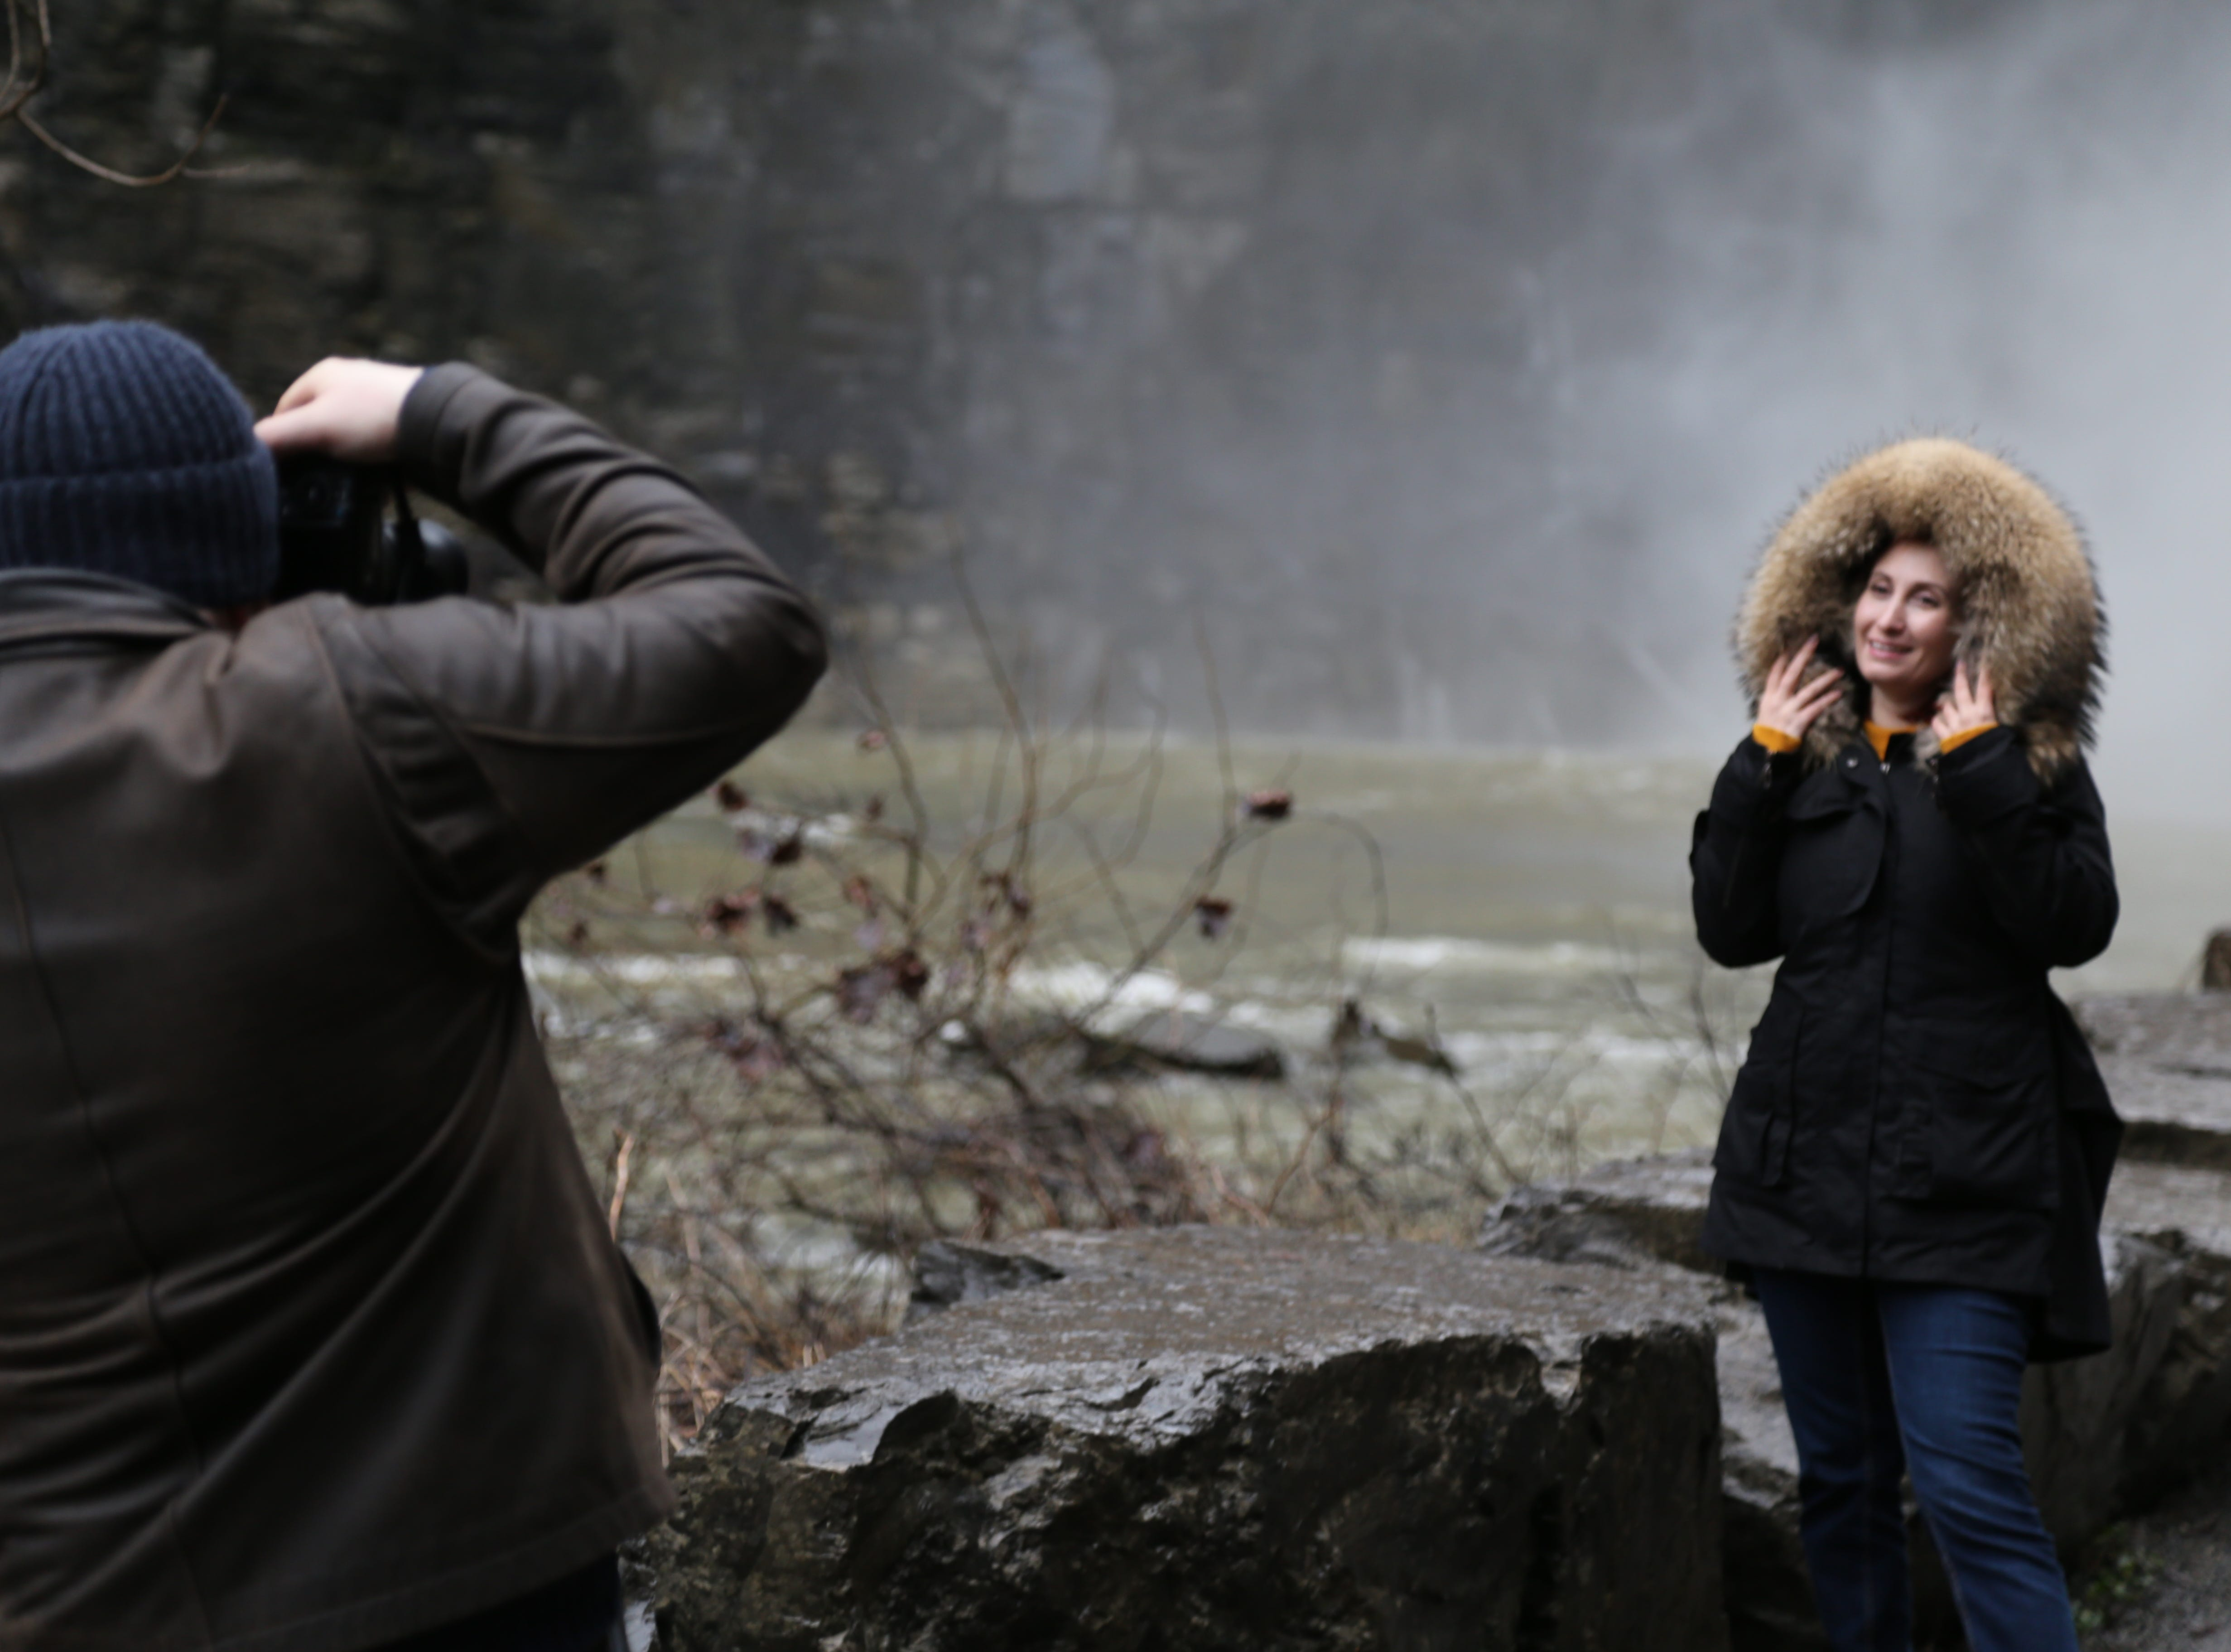 People hiked the gorge trail during the 2019 First Day Hike at Taughannock Falls State Park. The local First Day Hike is one of the largest events of its kind in the country.